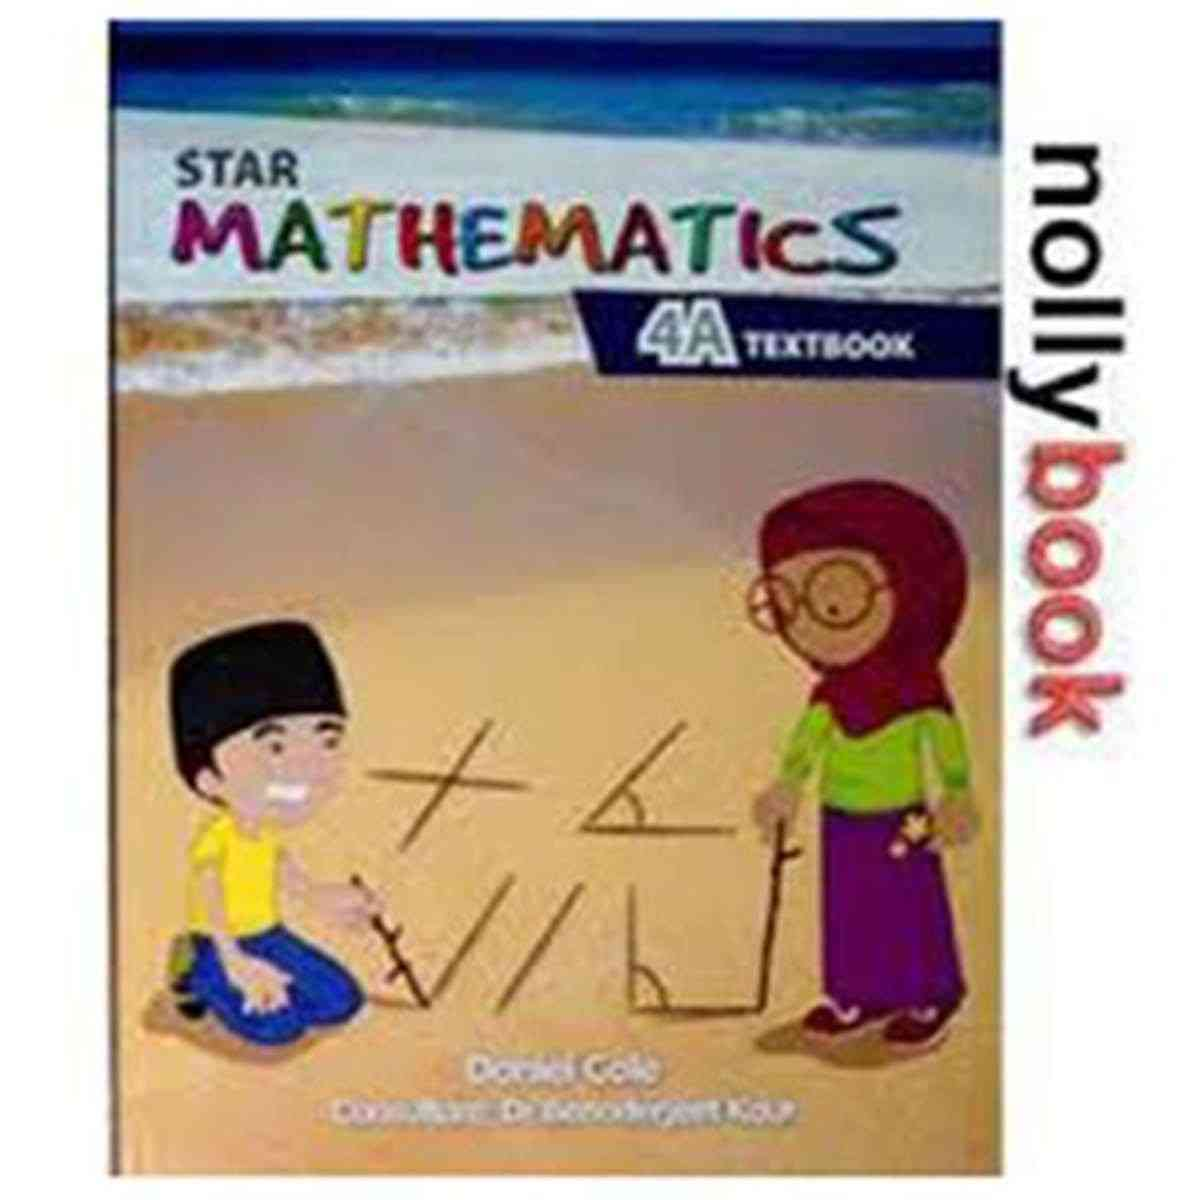 Paramount Star Mathematics: Textbook 4A Pb